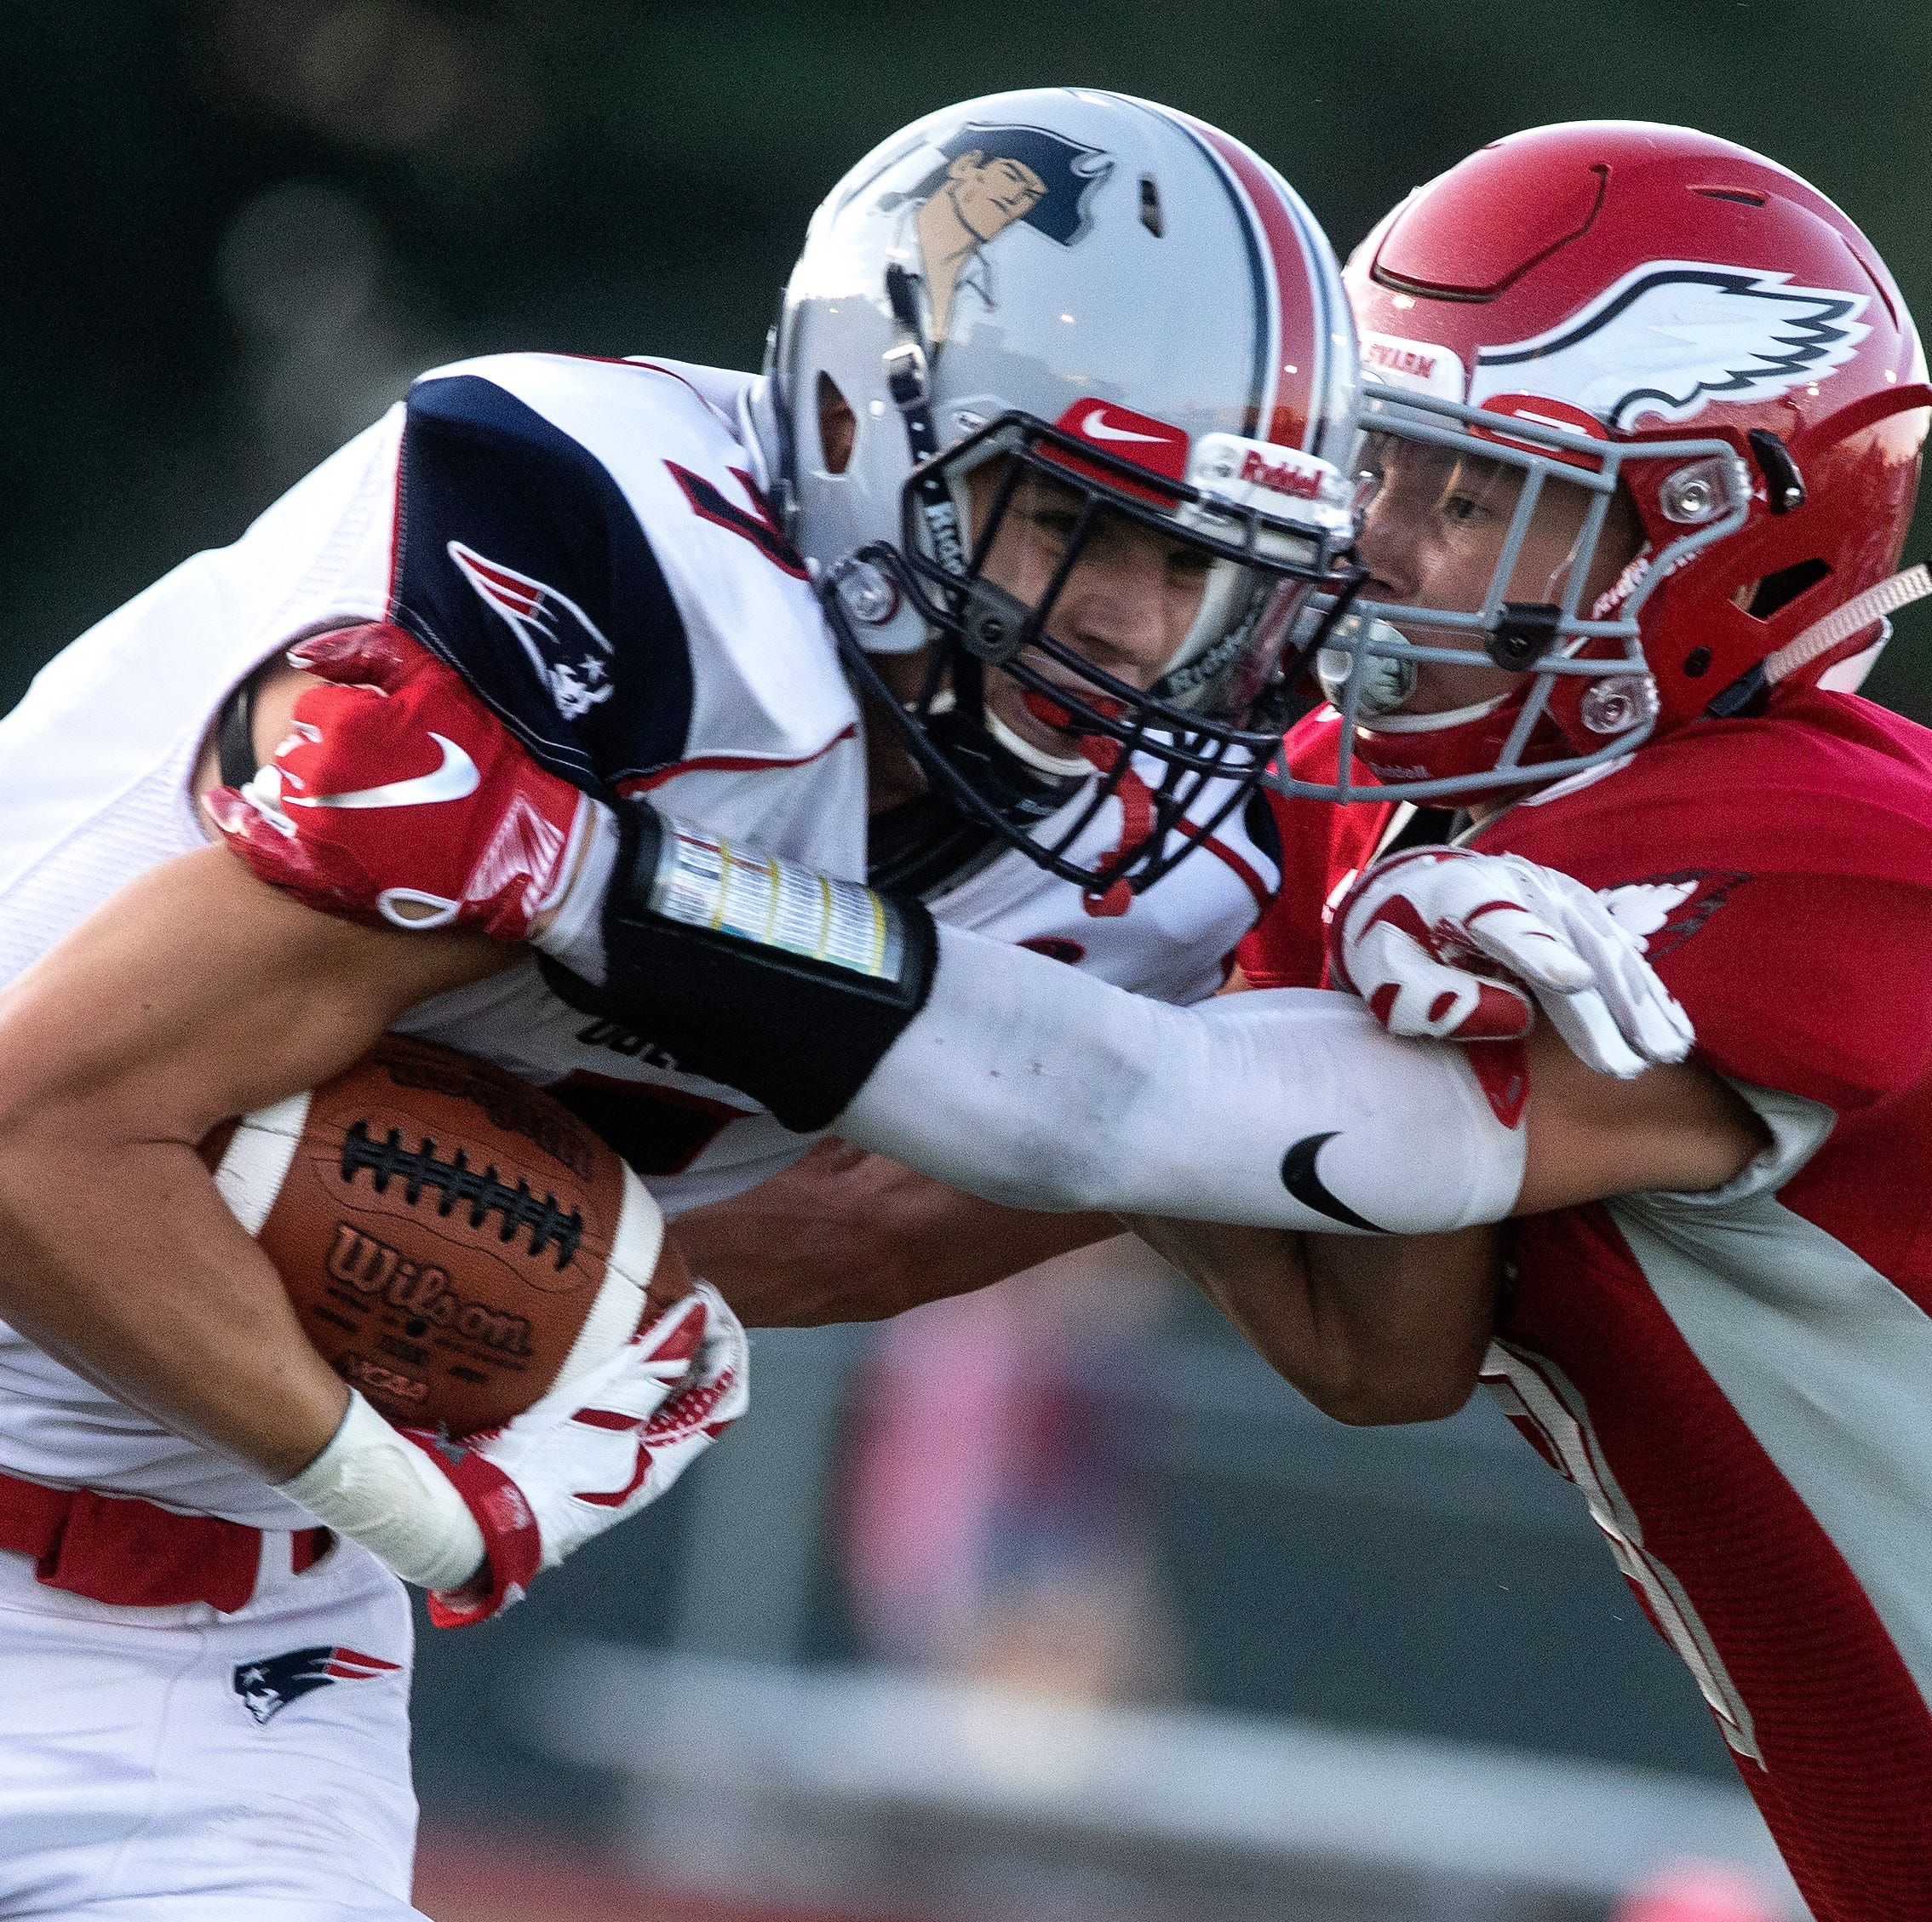 After season lost to injury, New Oxford football player commits to Division I college